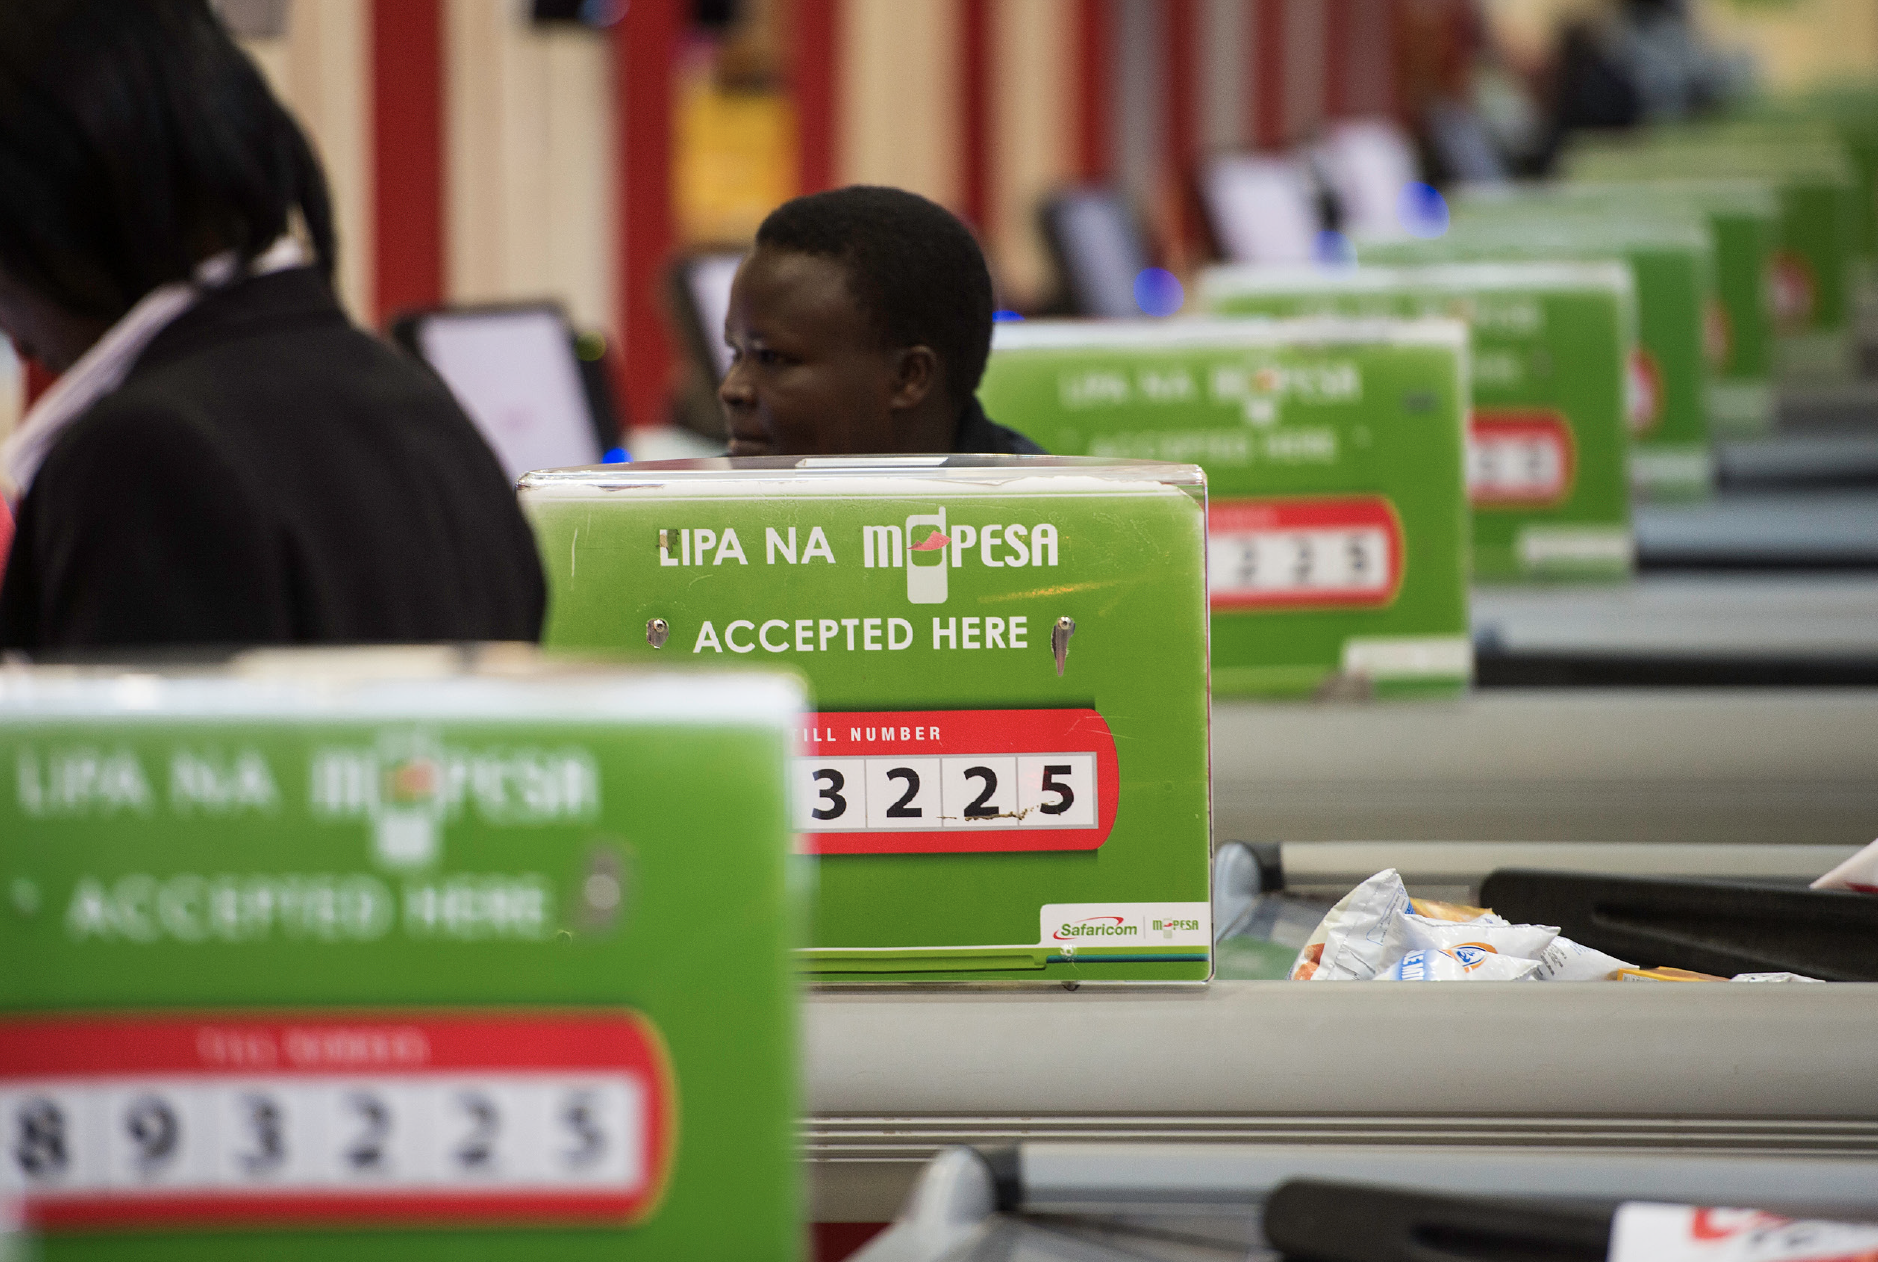 How can investors tap into Africa's consumer class?